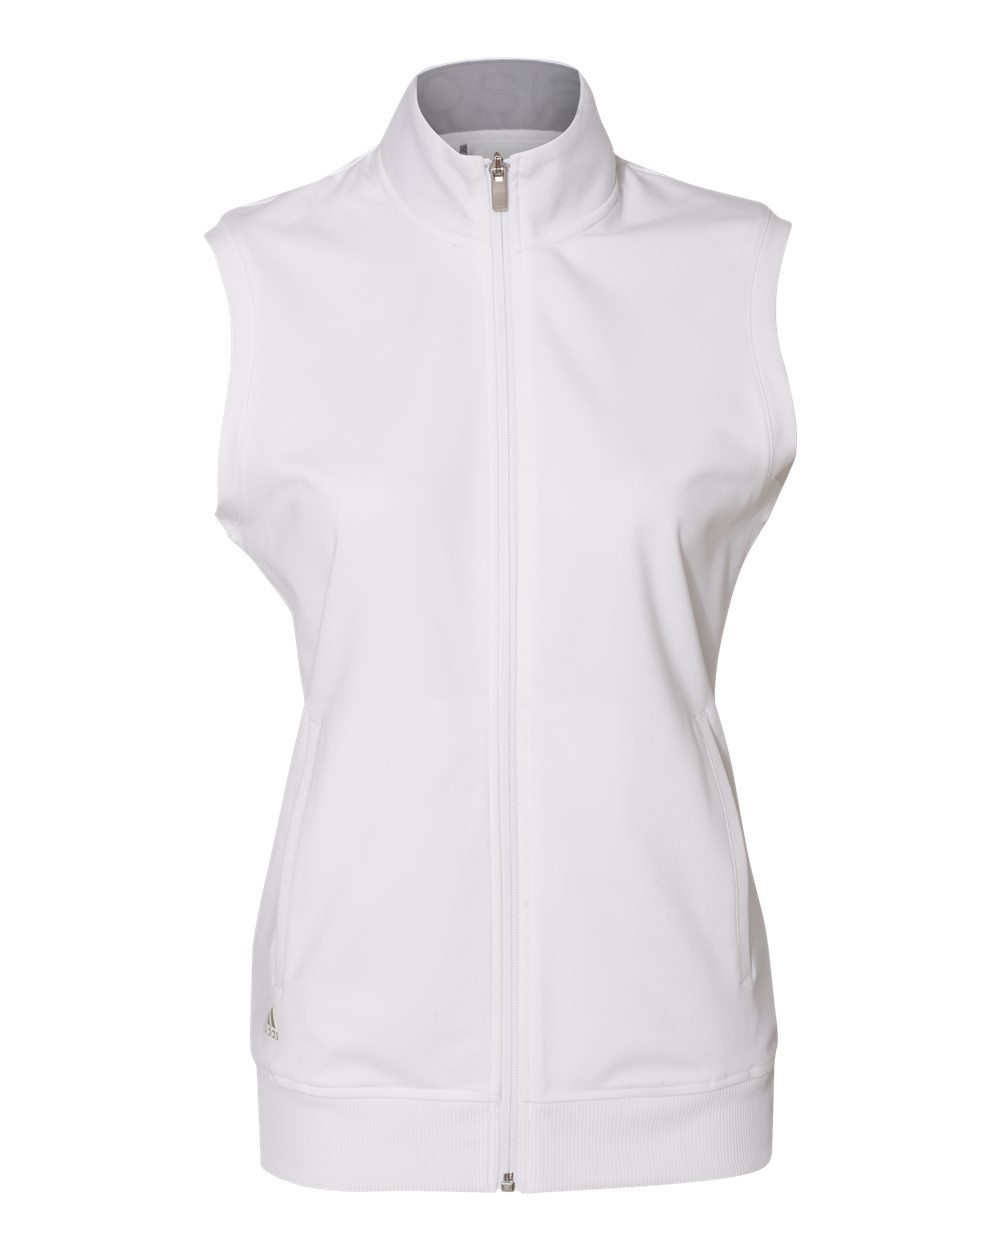 9d2122de25eac Adidas Womens Full-Zip Club Vest A272 [from $53.58] | Hosiery and More